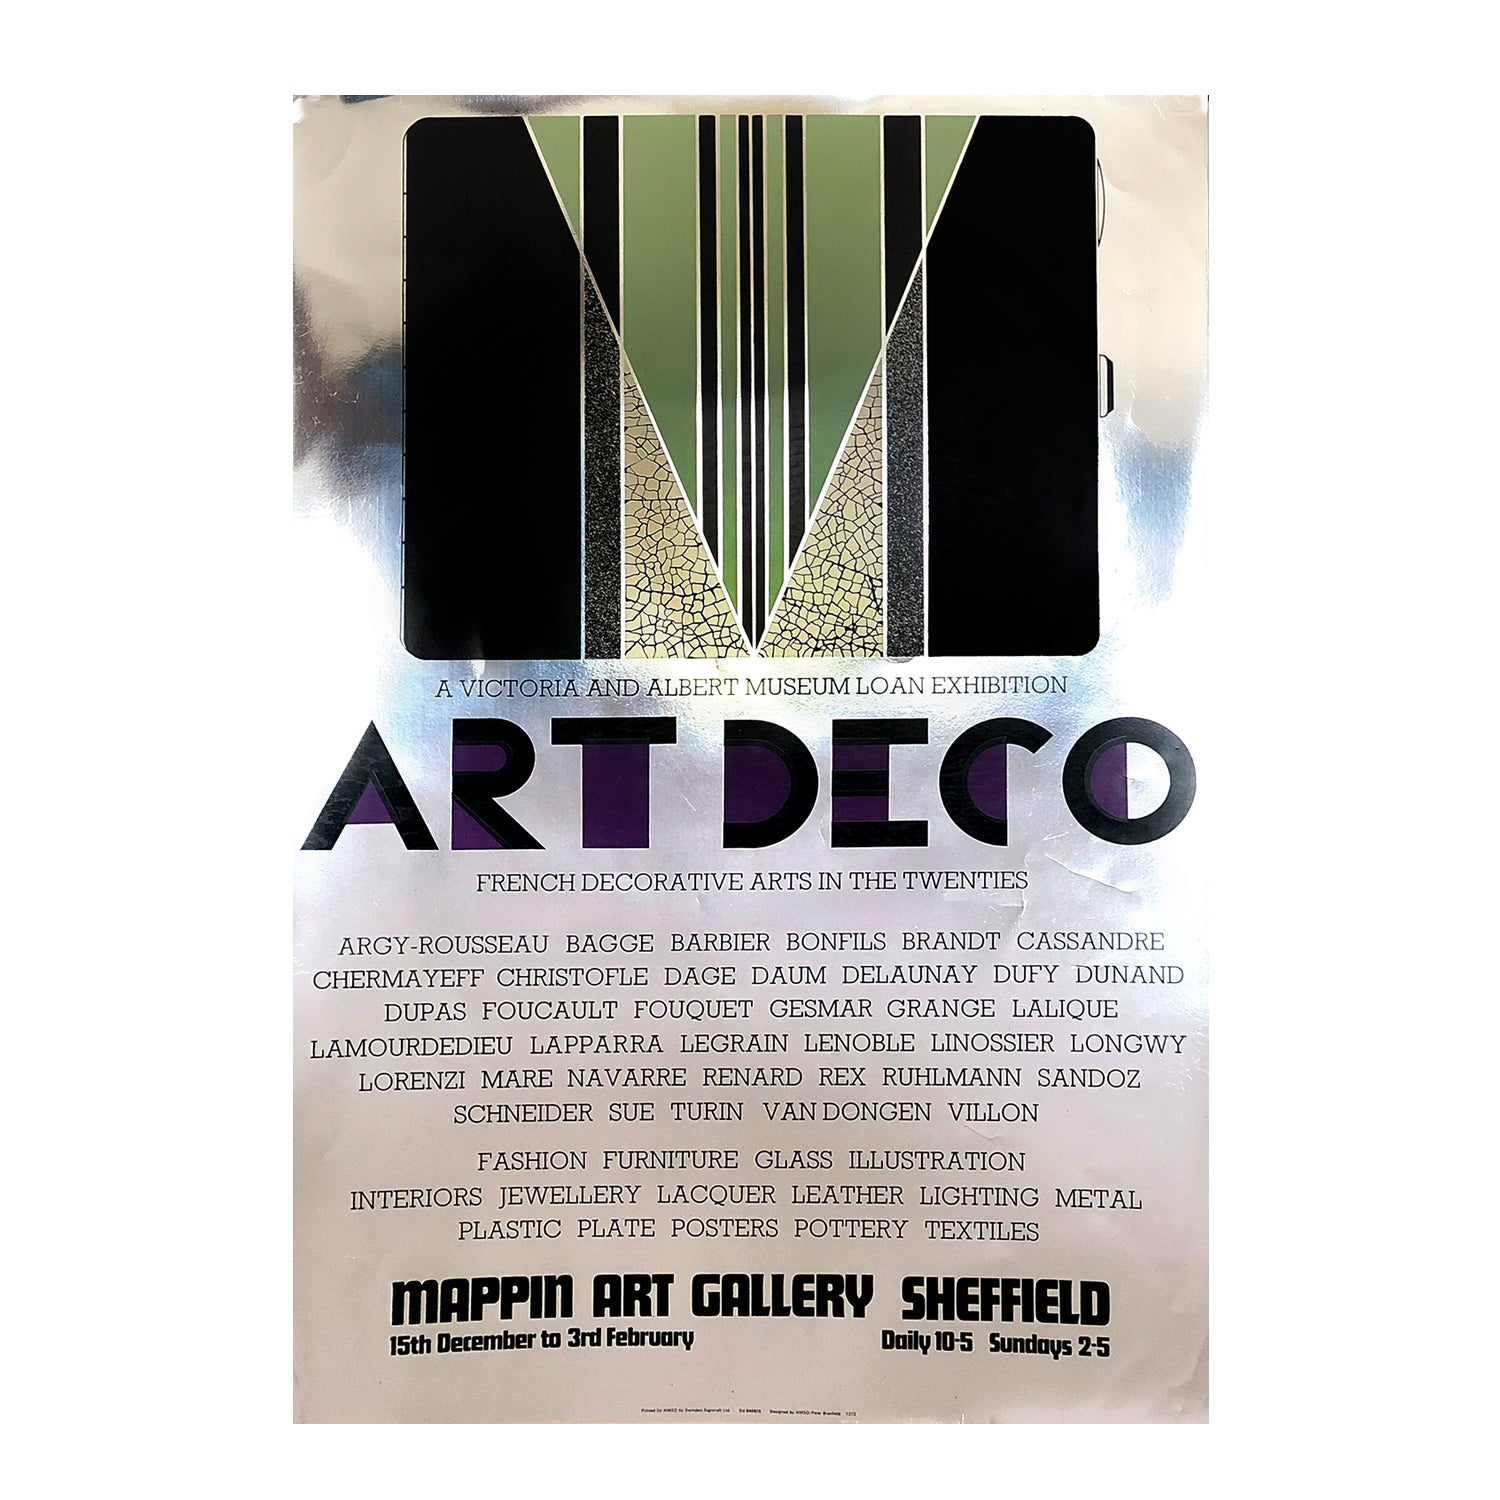 Original poster Art Deco - French Decorative Arts in the 1920s. Exhibition